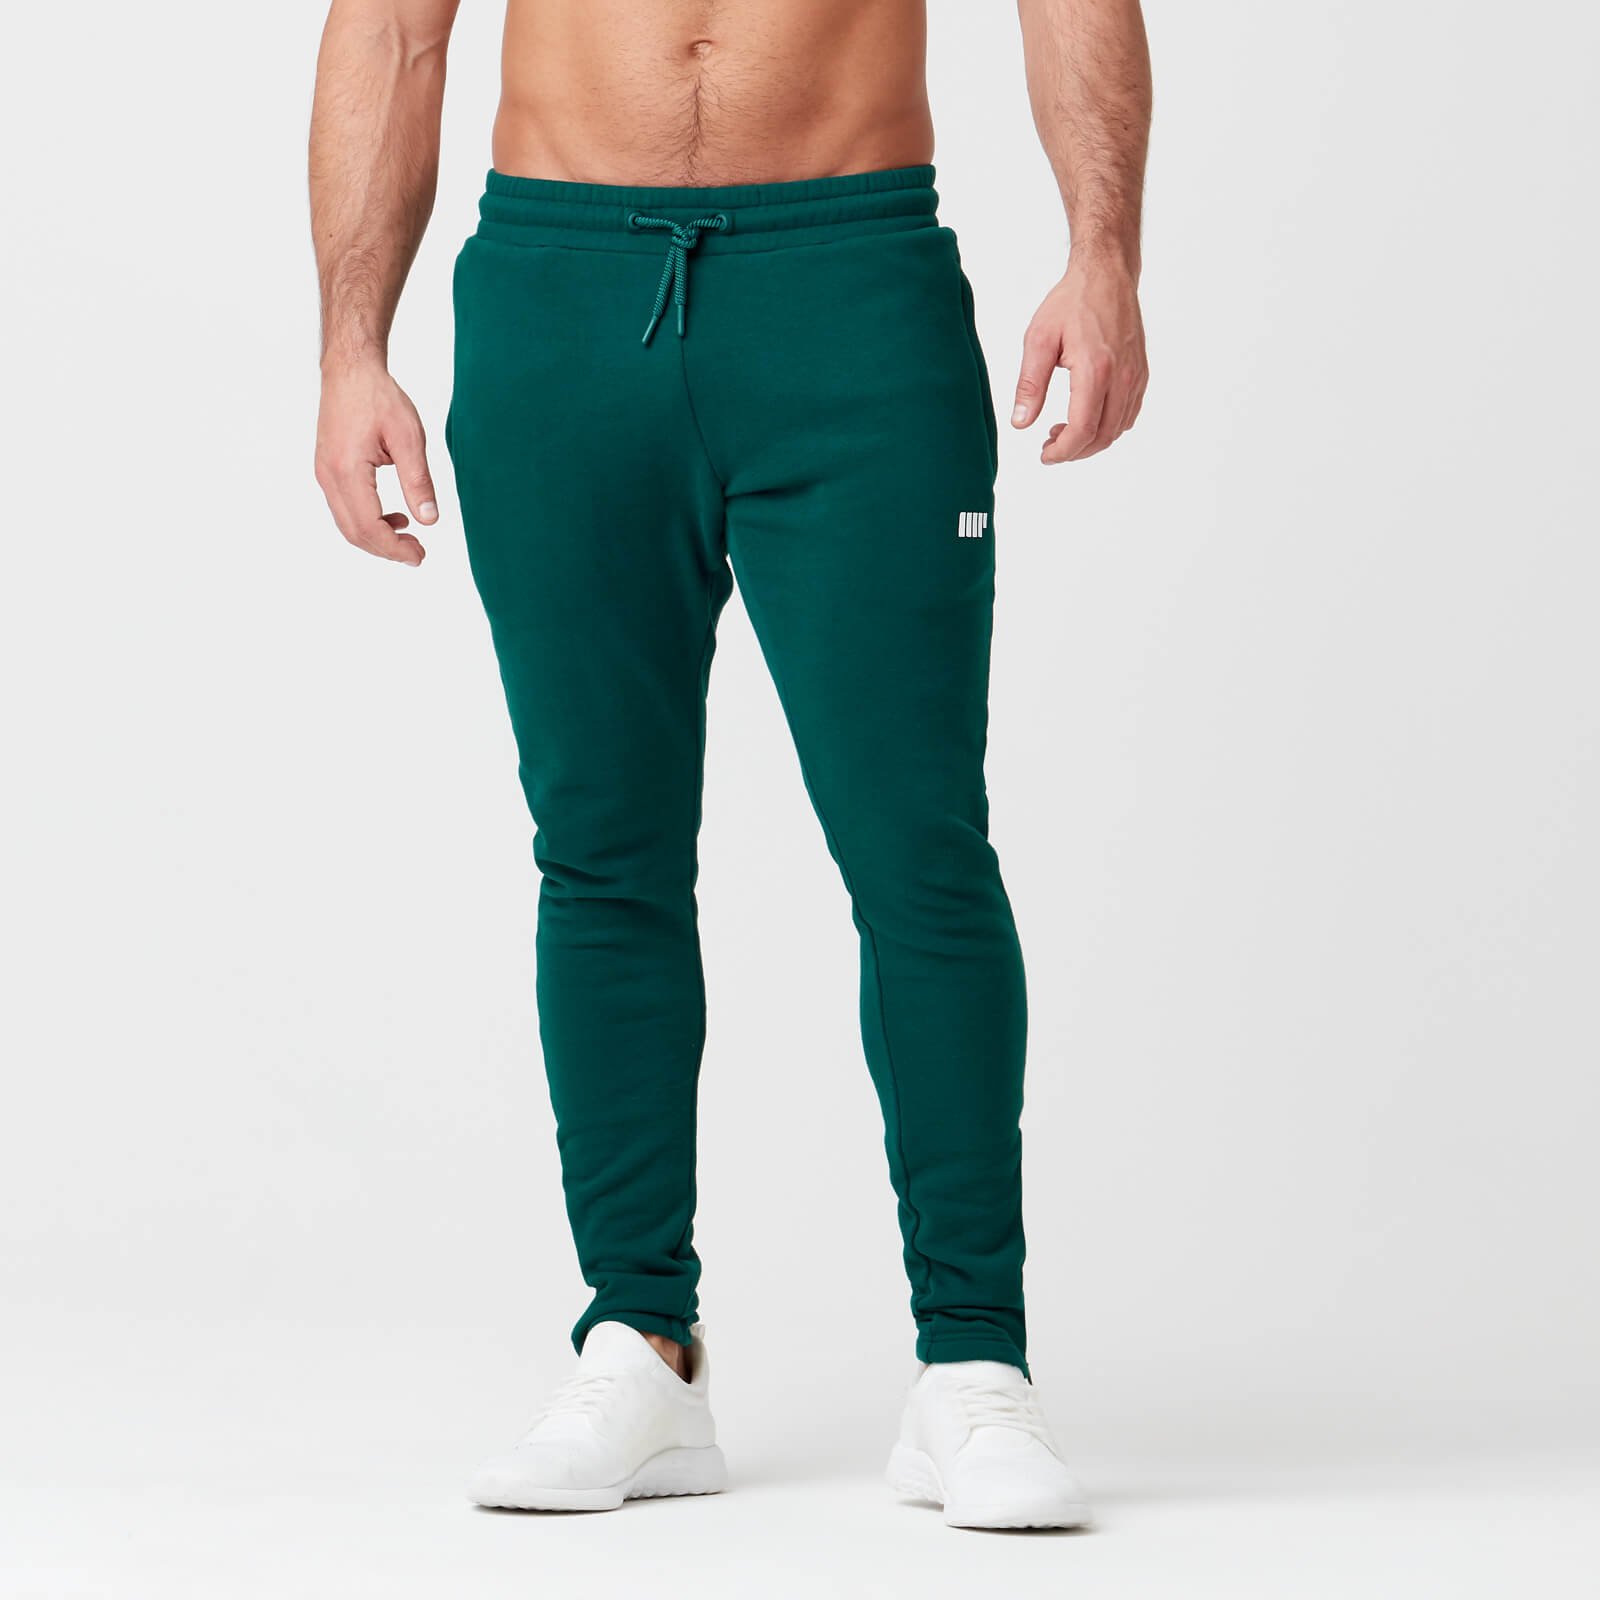 Myprotein Tru-Fit Zip Joggers - Dark Green - XS